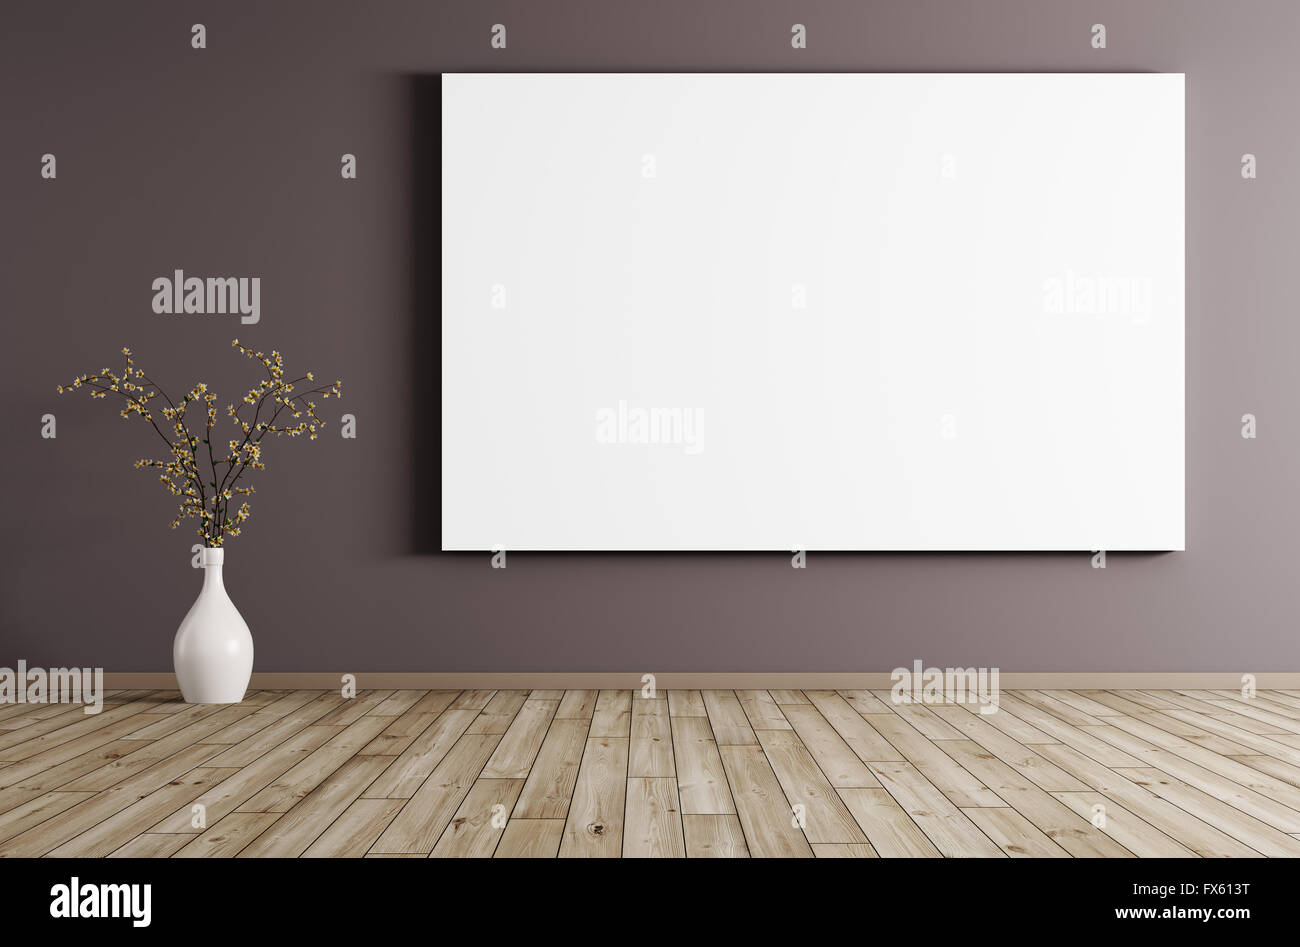 Big poster and flower vase in room with purple wall and wooden big poster and flower vase in room with purple wall and wooden floor interior background 3d rendering reviewsmspy